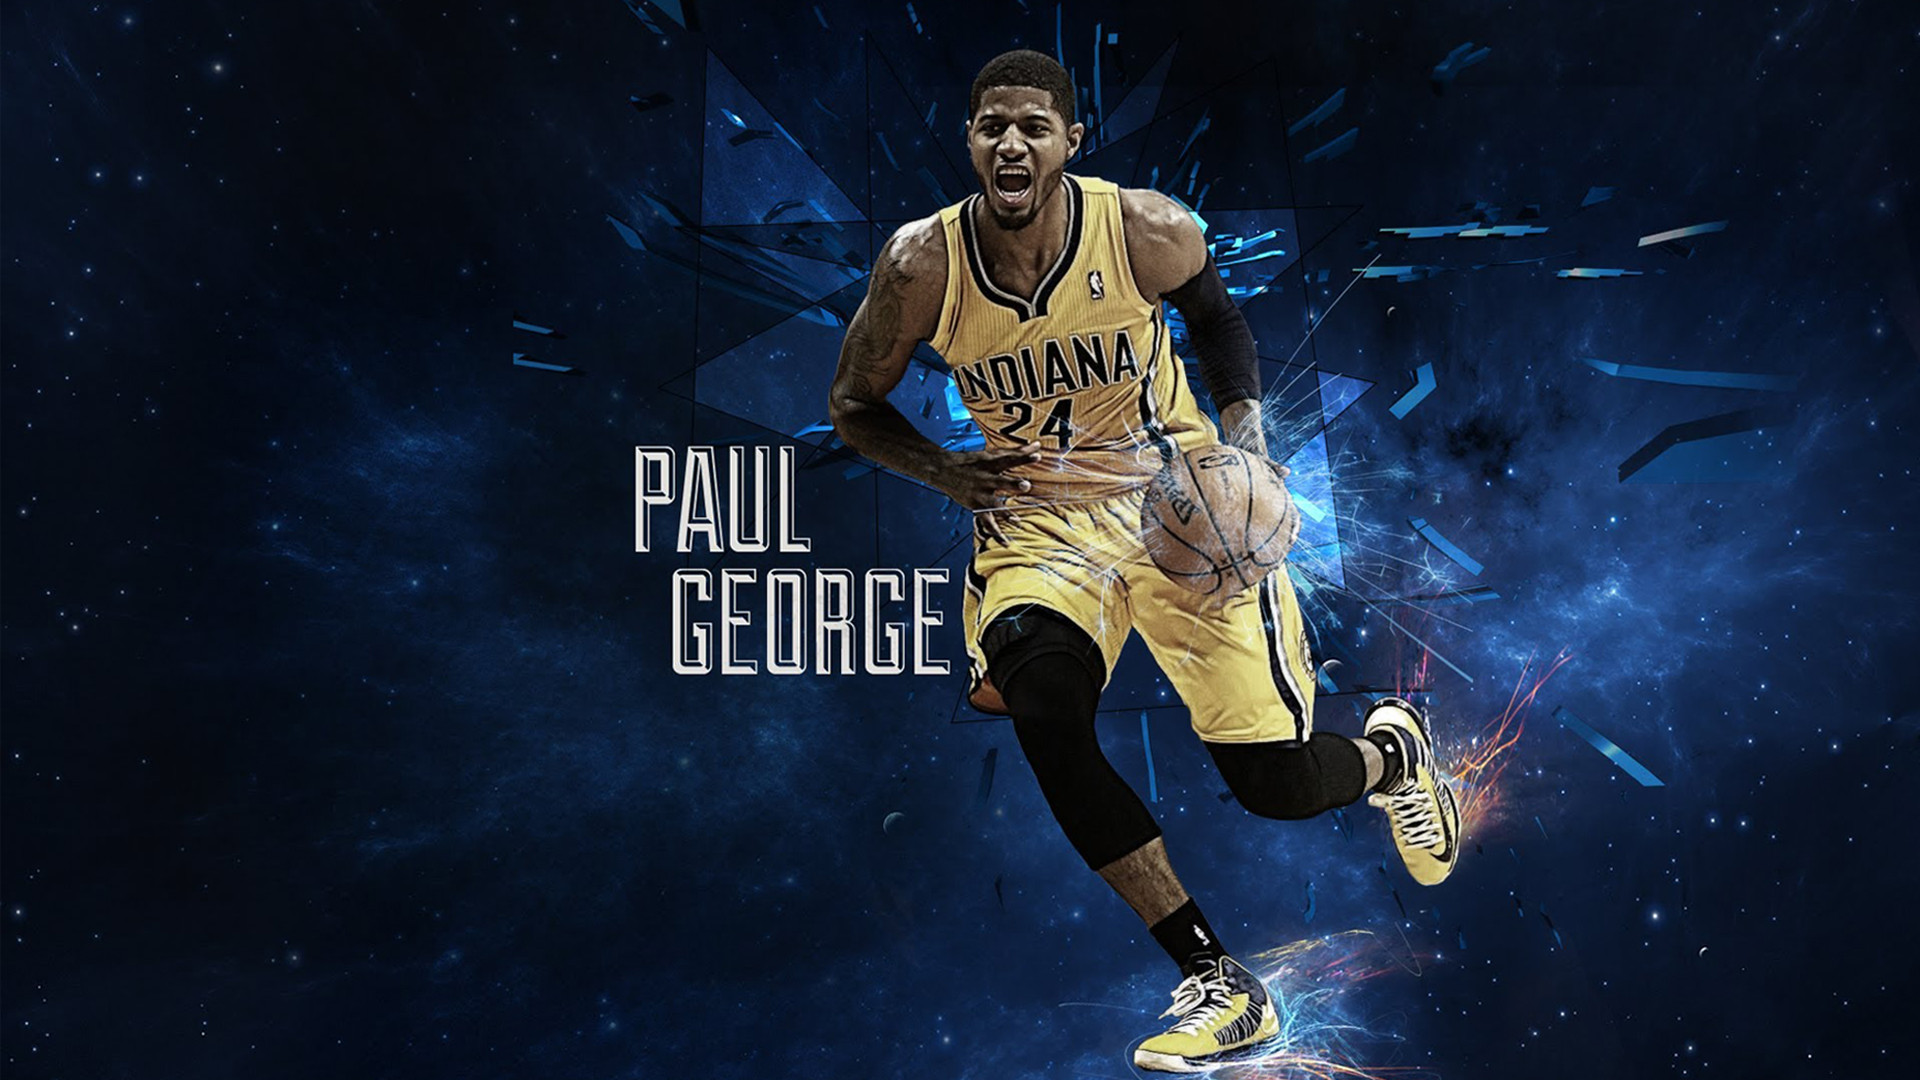 Paul George Indiana Pacers NBA Players HD Wallpaper Free.